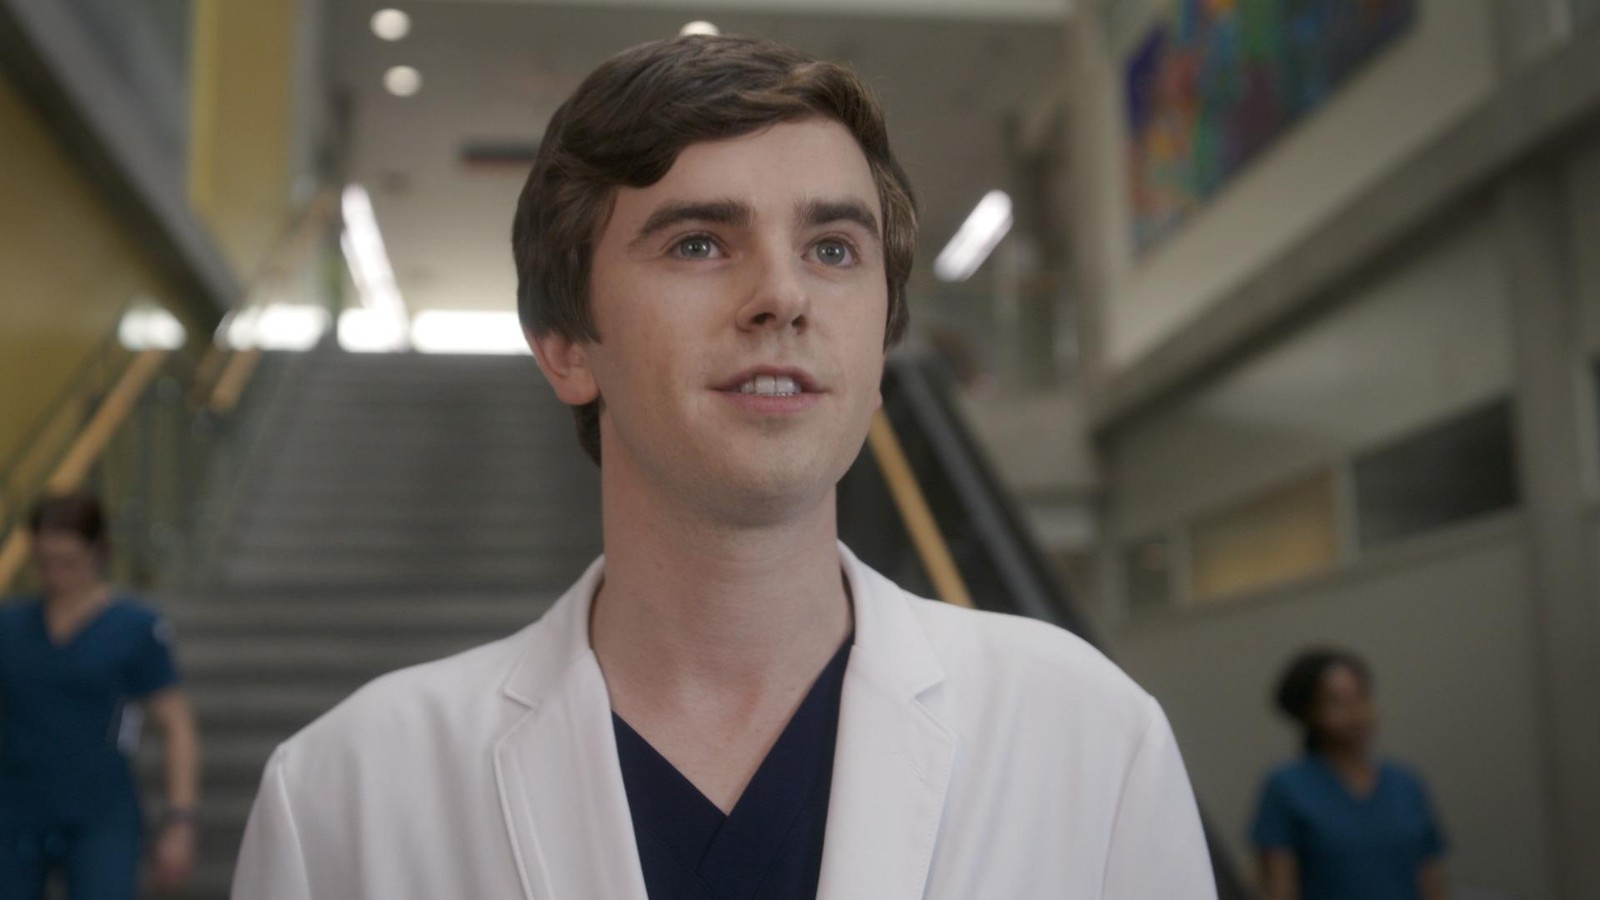 The Good Doctor Season 2 Premiere Date Announced | The Good